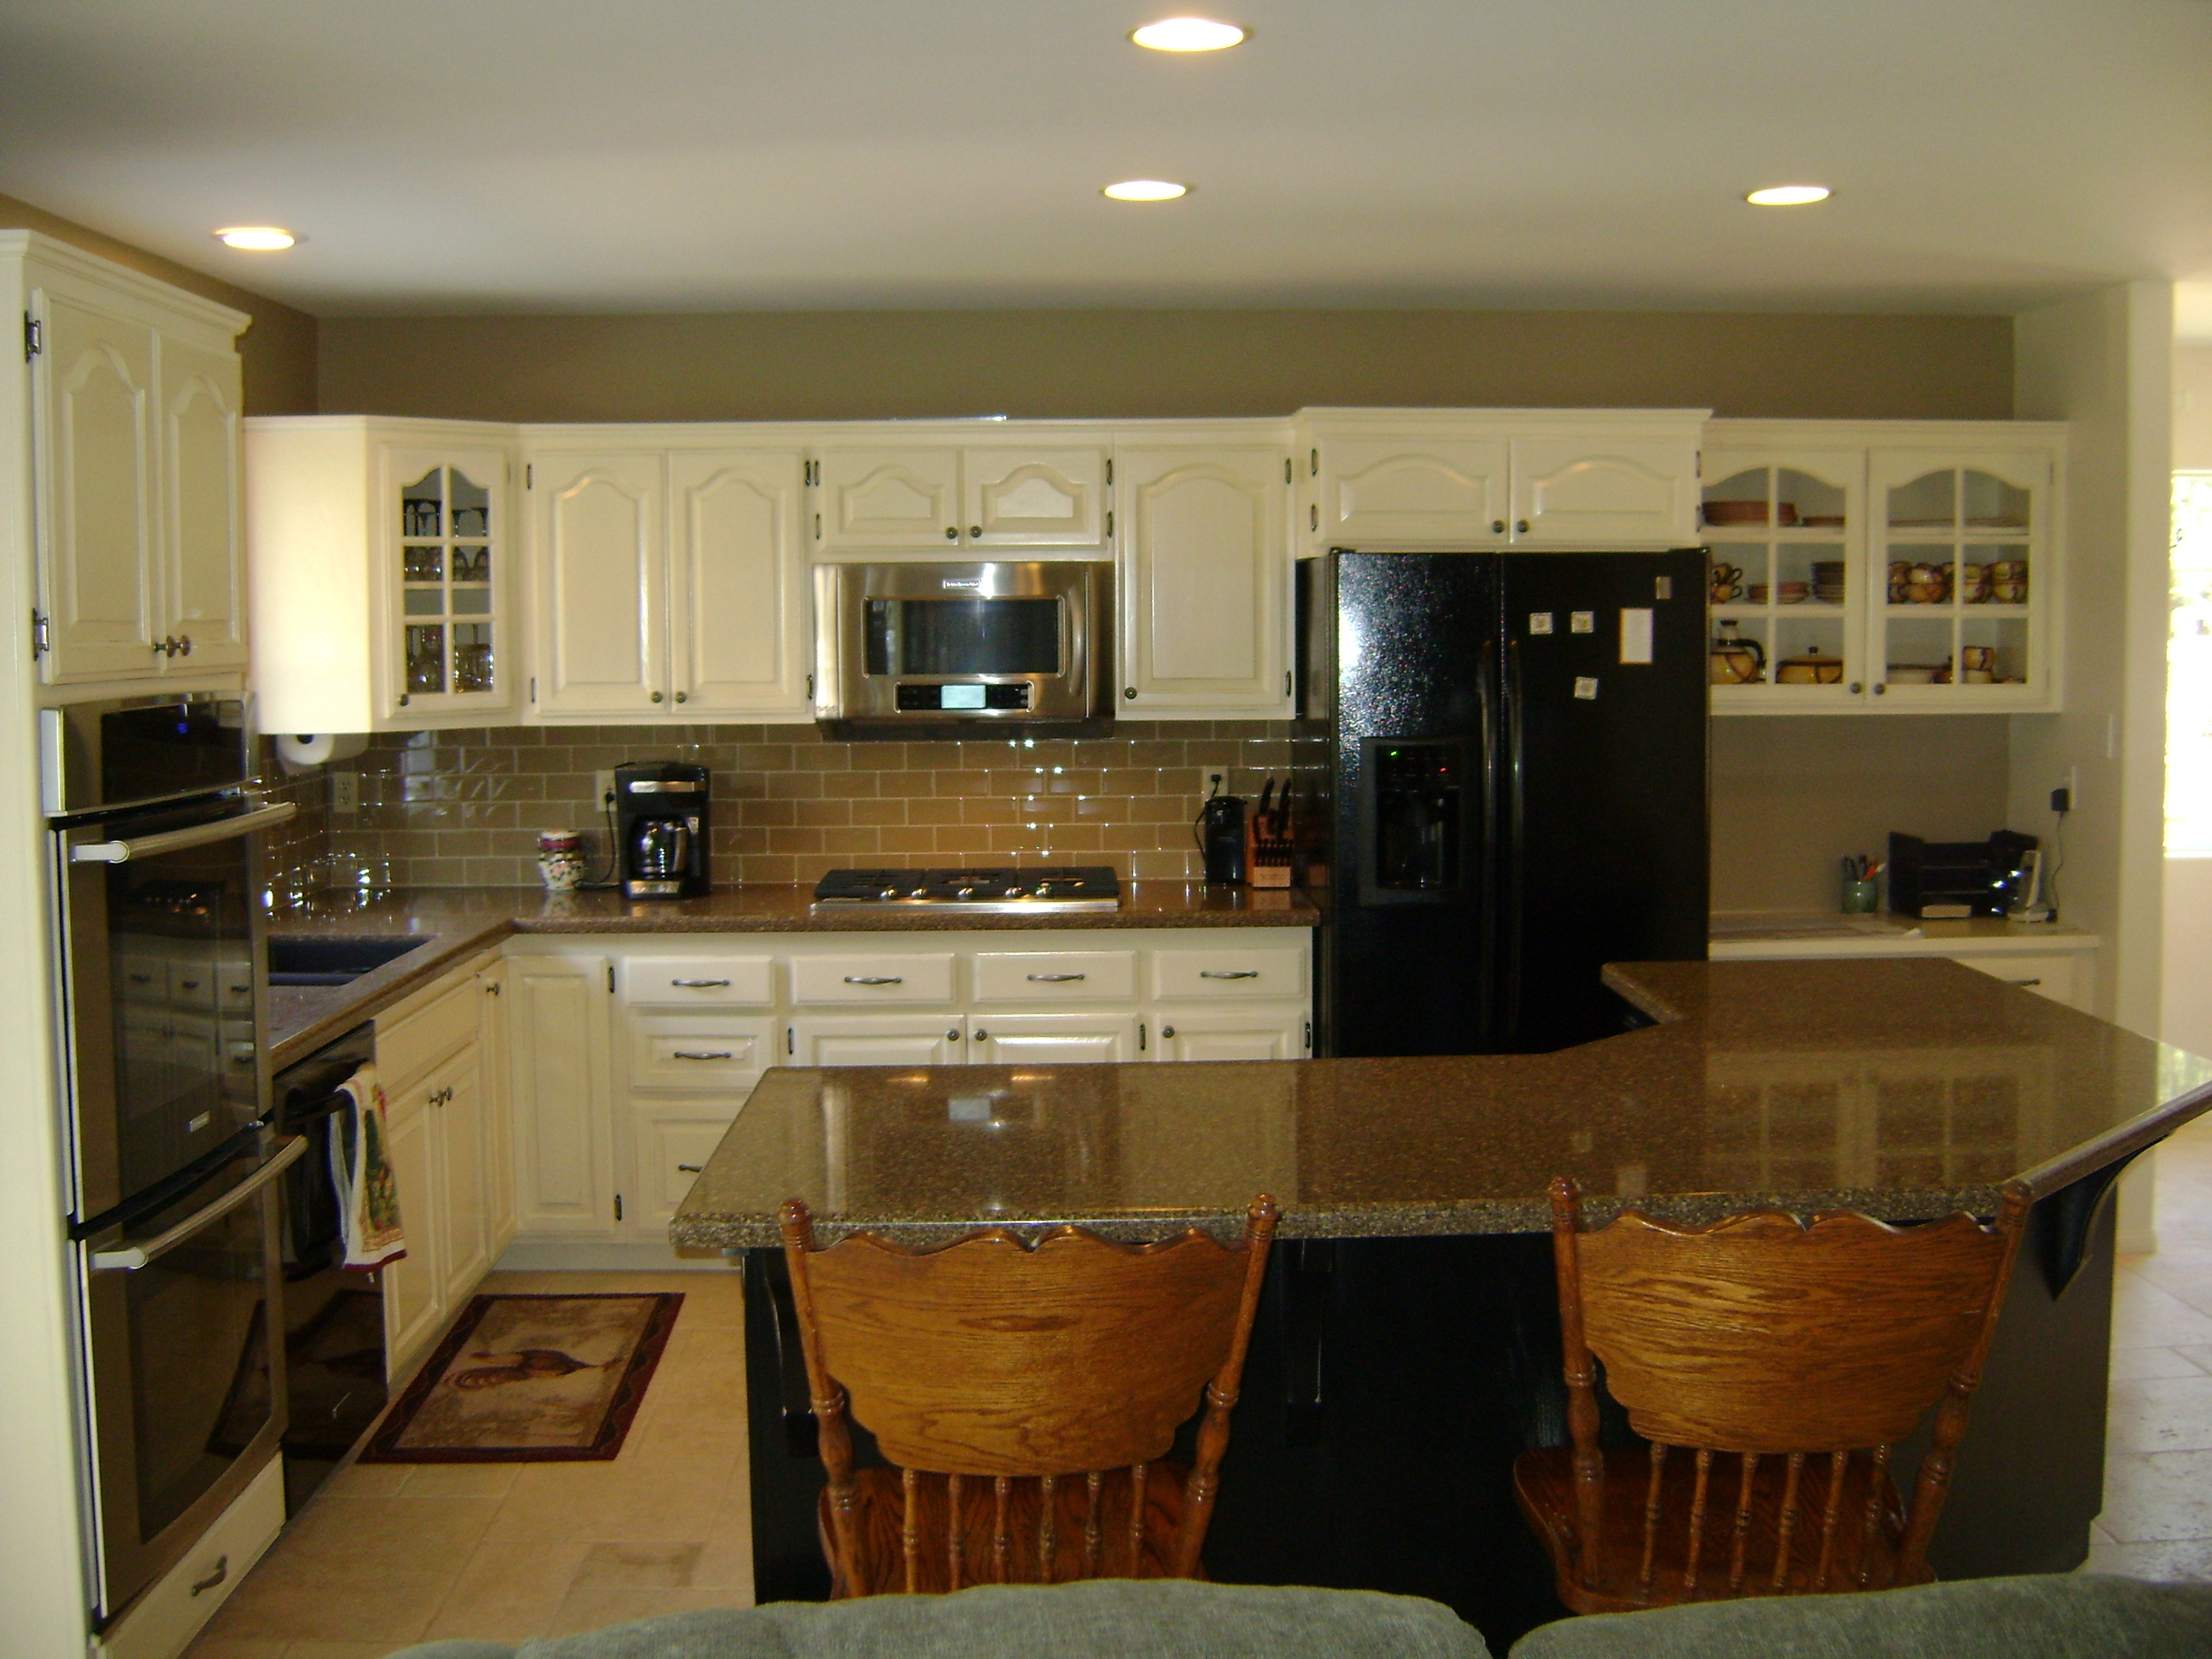 Daly Road Kitchen After